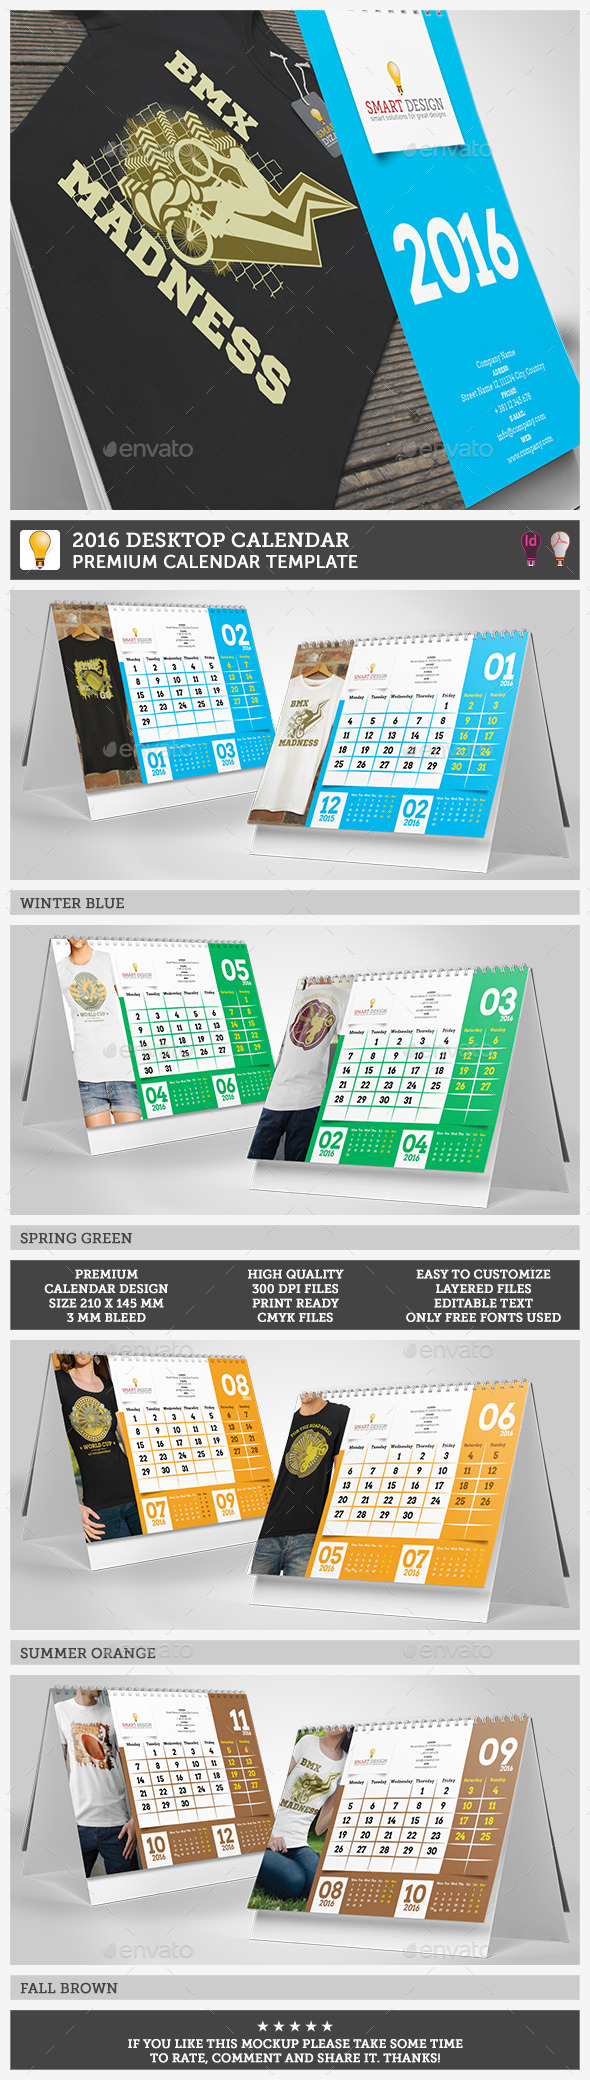 GraphicRiver 2016 Desktop Calendar Template 11891186